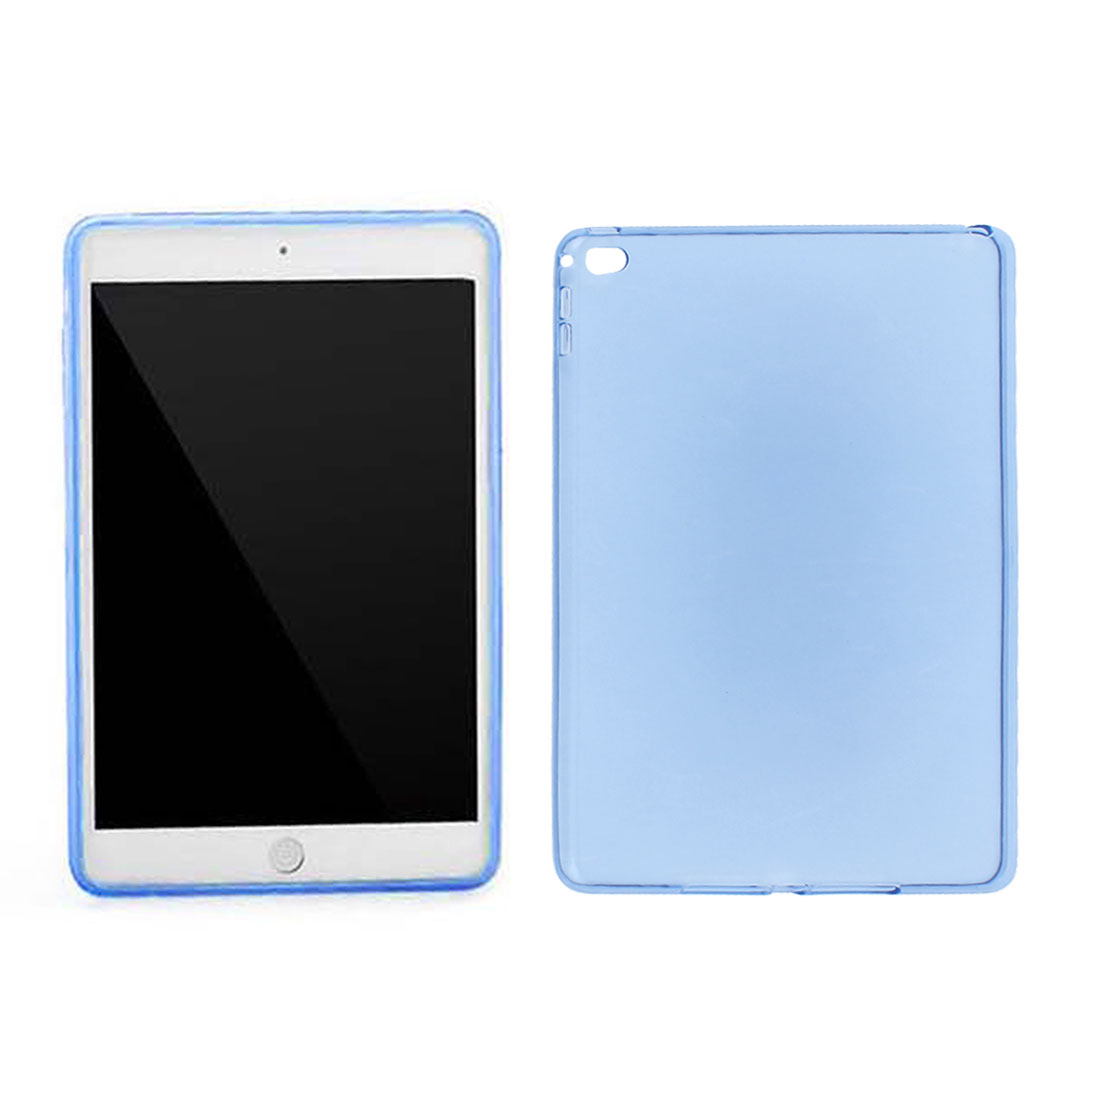 Clear Blue Soft TPU Protector Case Cover for Apple iPad Air 2 iPad 6